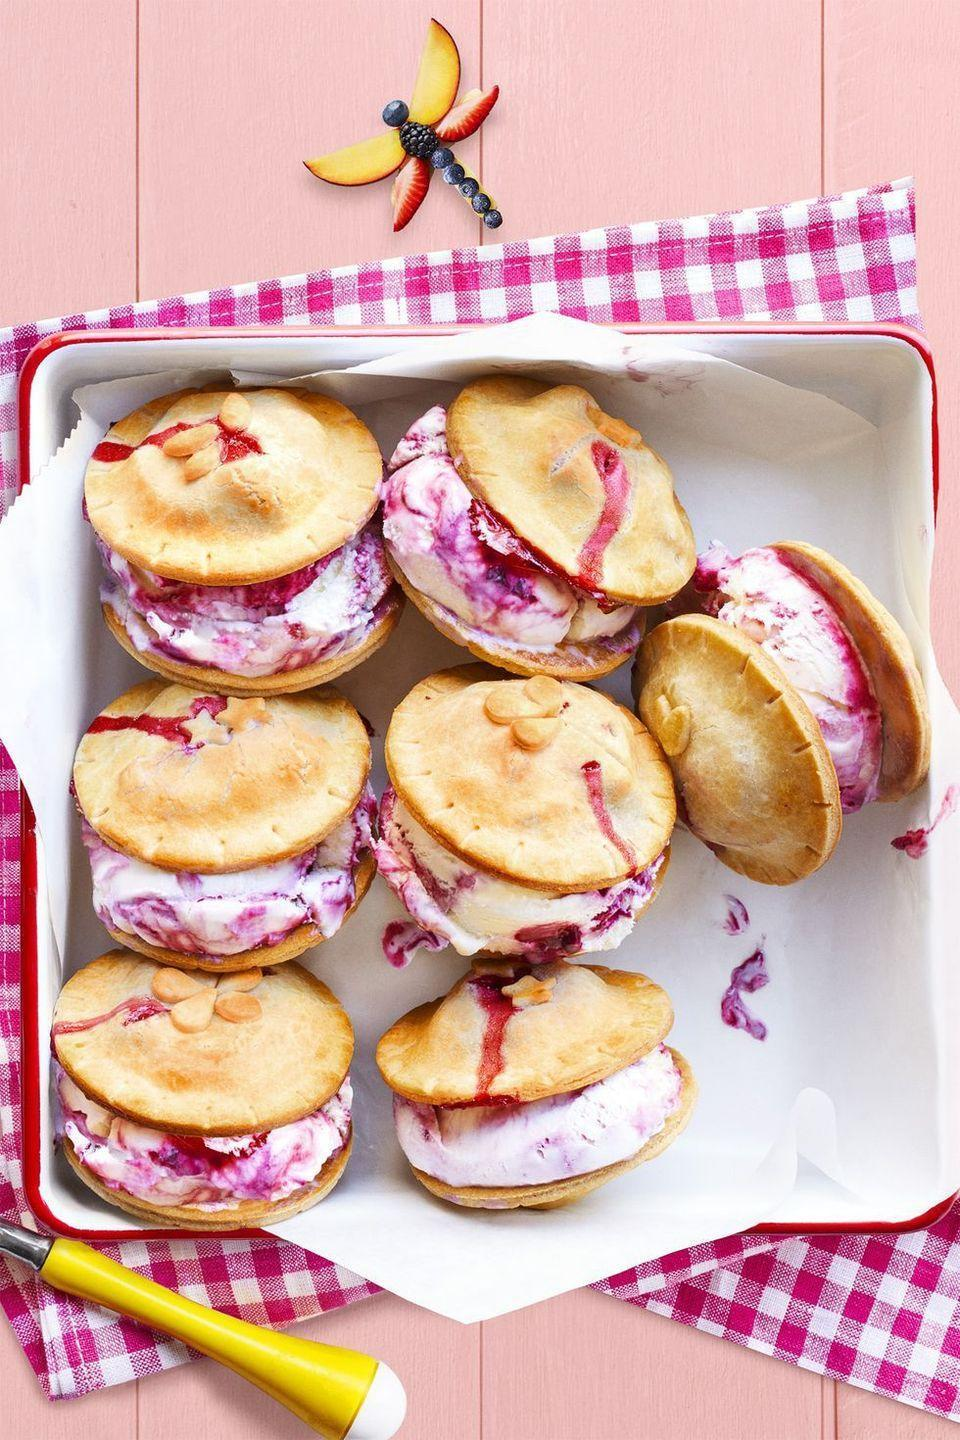 """<p>Ice cream sandwiches meet pie à la mode with these tasty summer bites.</p><p><strong><em><a href=""""https://www.womansday.com/food-recipes/food-drinks/recipes/a59001/fresh-berry-ice-cream-piewiches-recipe/"""" rel=""""nofollow noopener"""" target=""""_blank"""" data-ylk=""""slk:Get the Fresh Berry Ice Cream Piewiches recipe."""" class=""""link rapid-noclick-resp"""">Get the Fresh Berry Ice Cream Piewiches recipe. </a></em></strong><br></p>"""